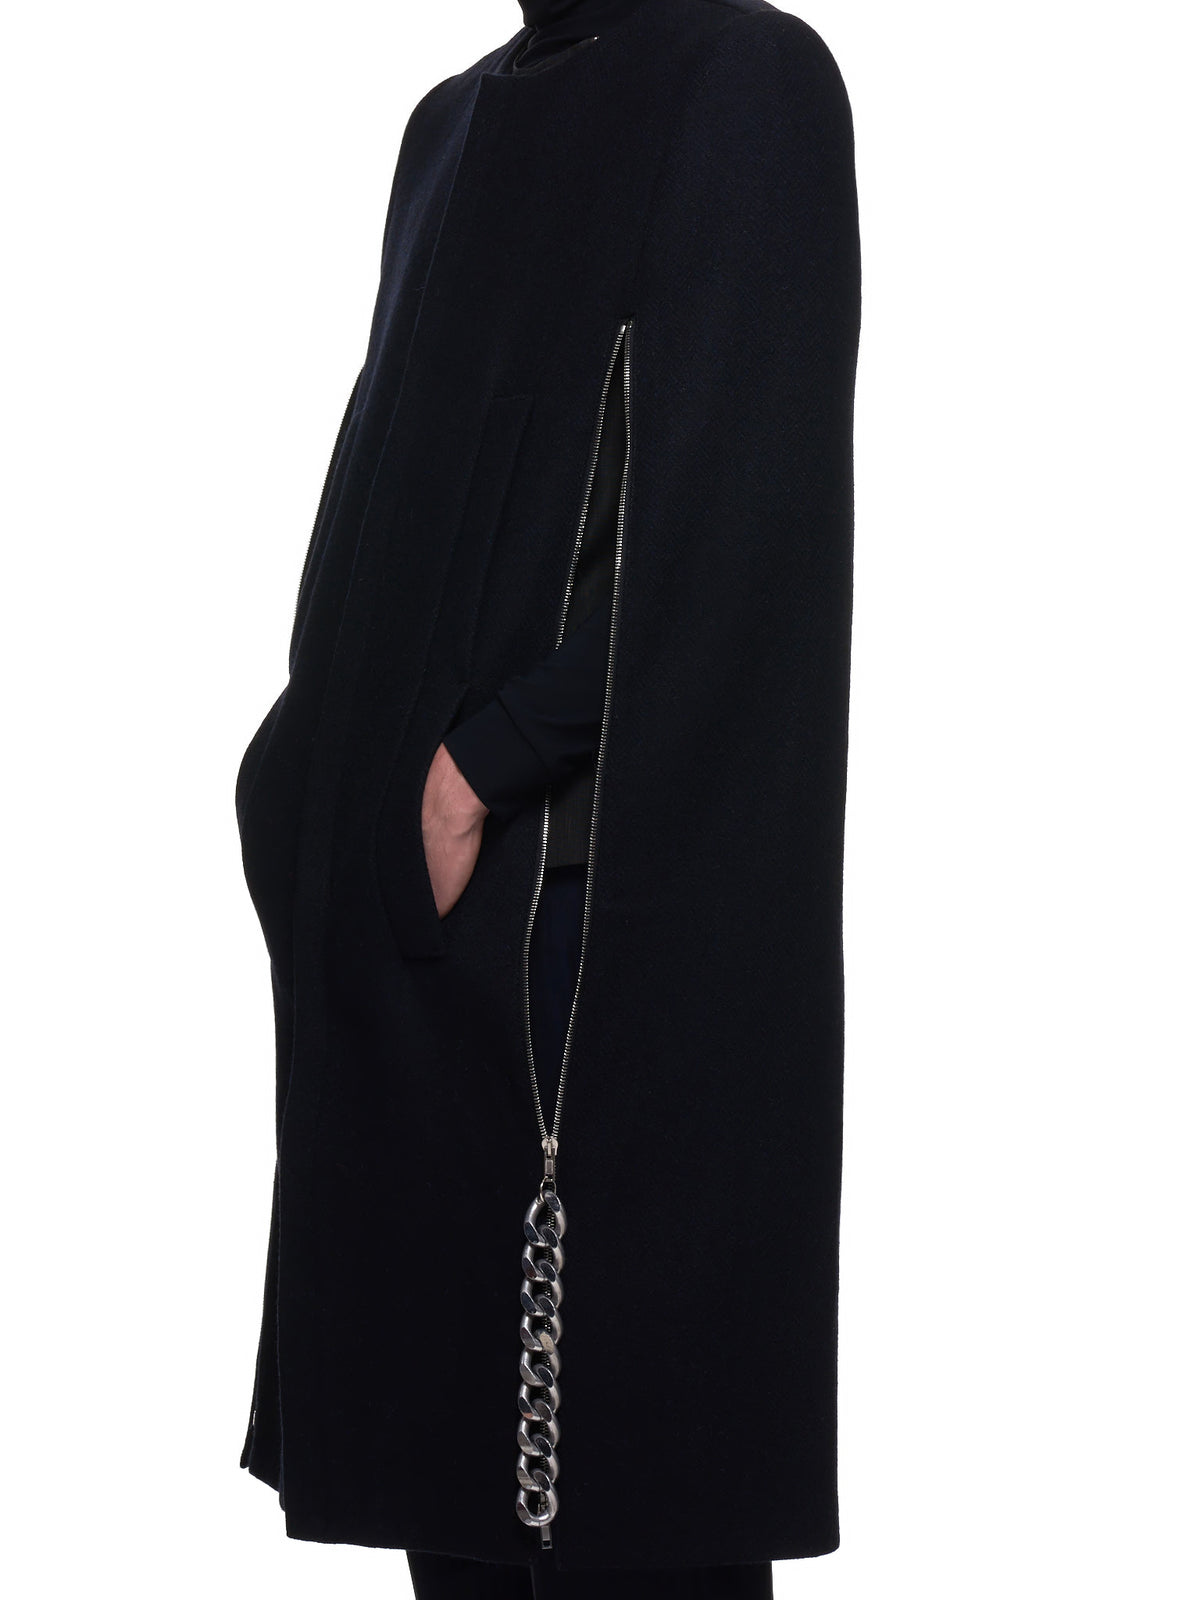 Punk Cape (202-663-20005-DARK-NAVY)